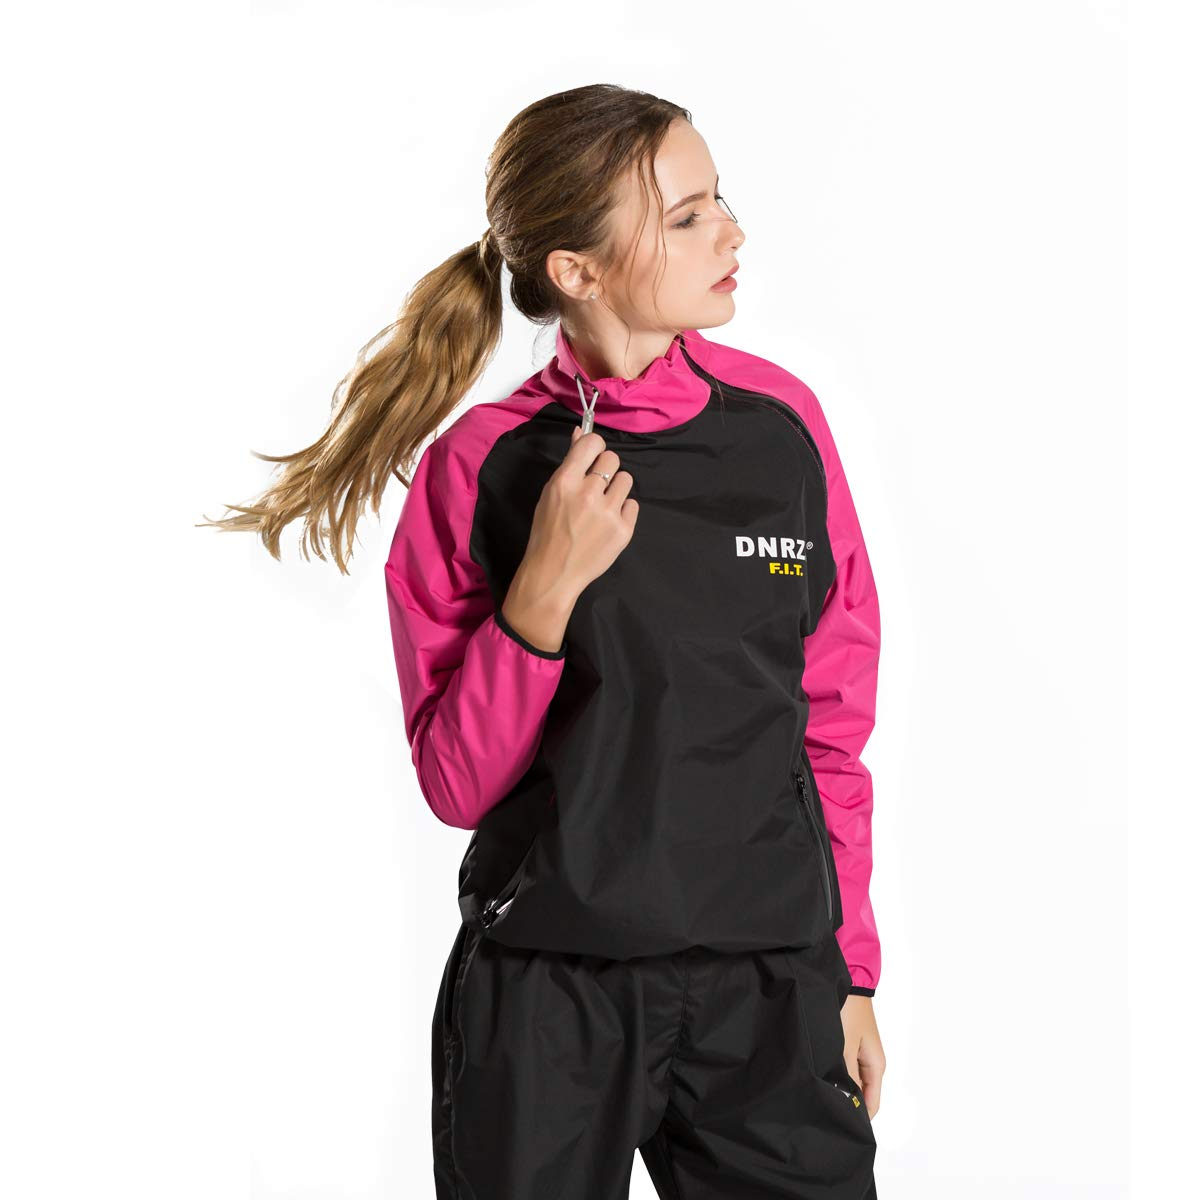 DNRZY F.I.T Sweat Sauna Suits for Women Weight Loss Slimming Clothes Lose Weight Fat Burner Durable Long Sleeves Running Workout Cloth